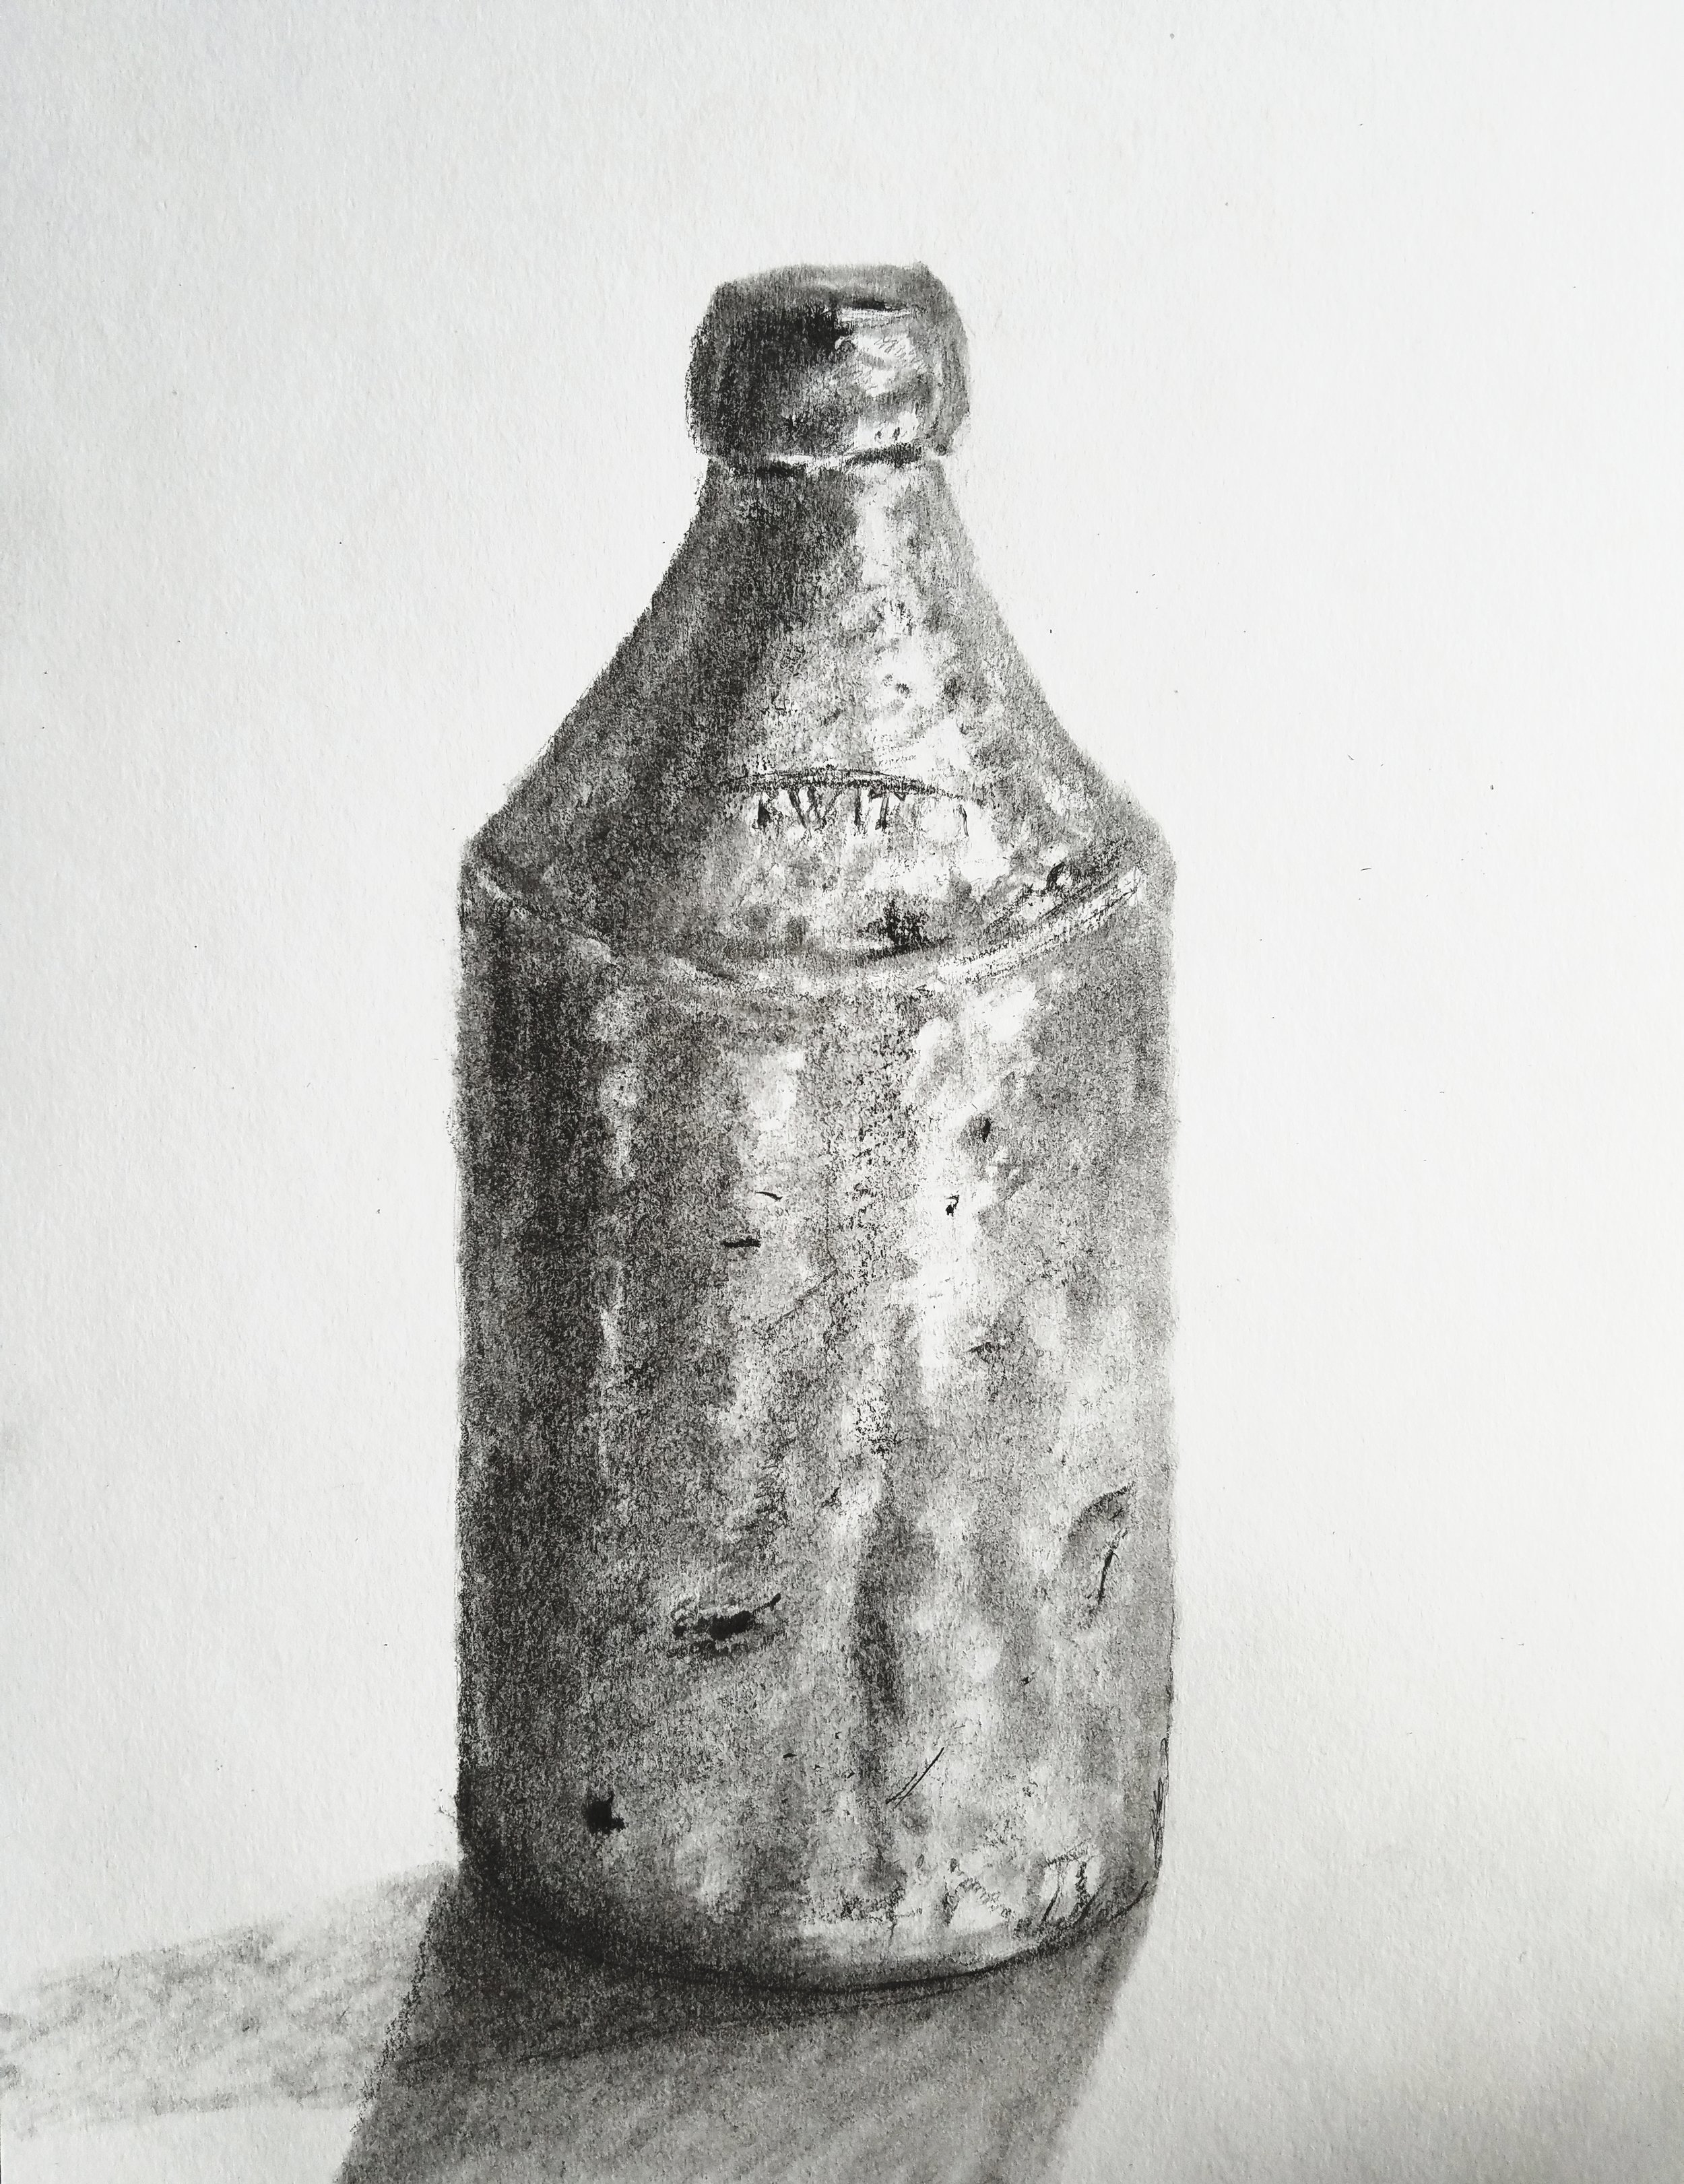 Ceramic Beer Bottle; graphite; 2018